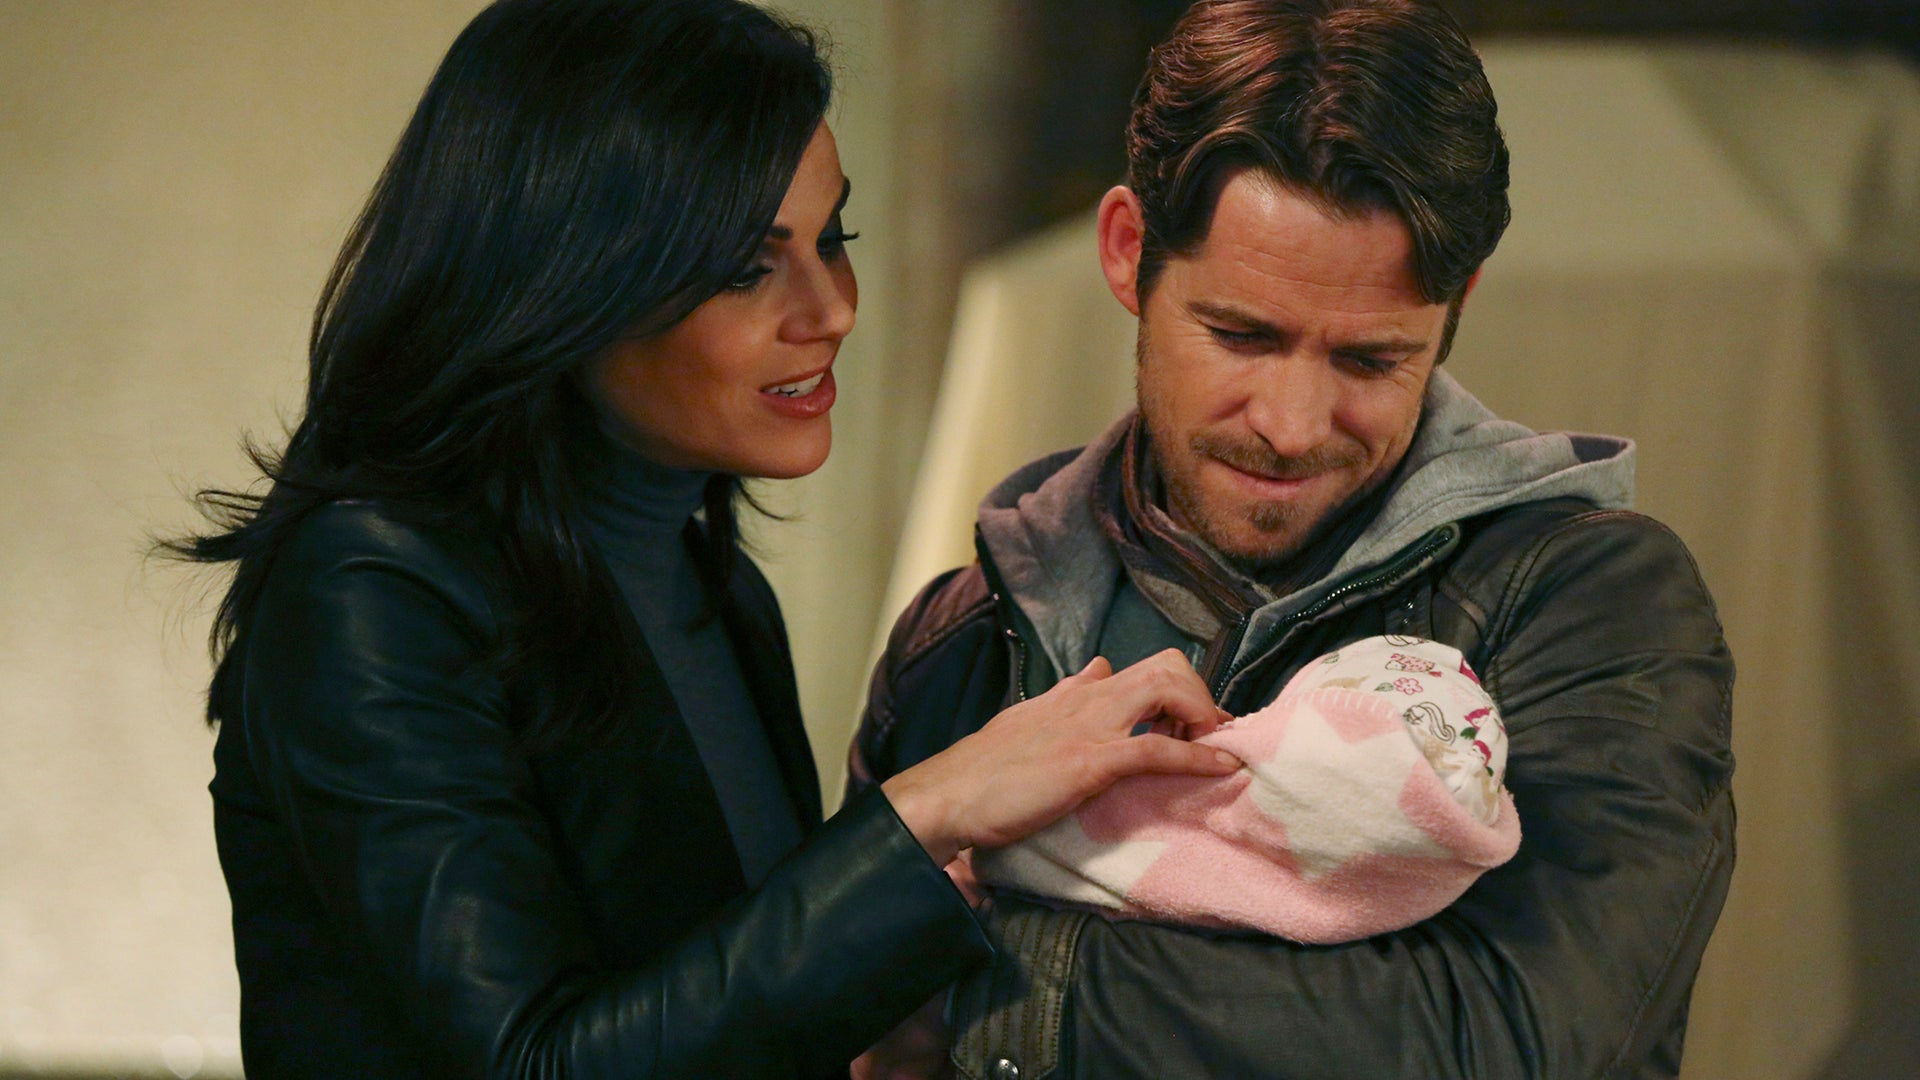 Lana Parrilla and Sean Maguire, Once Upon a Time